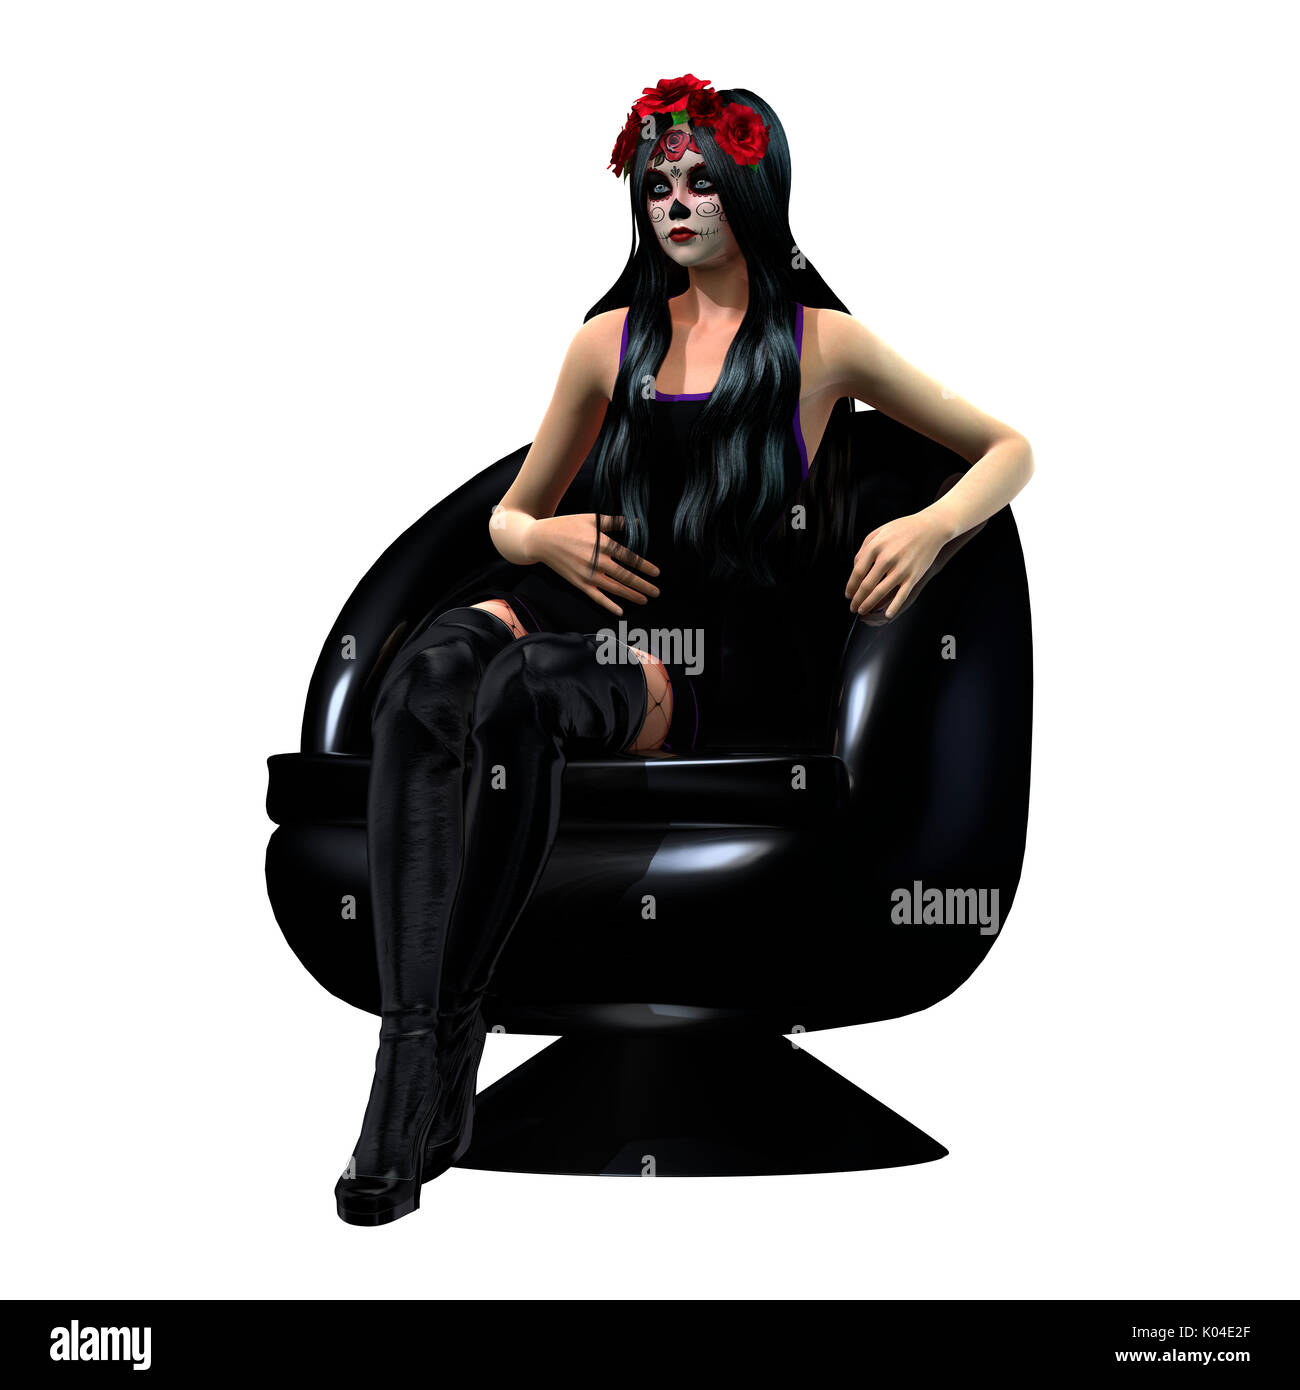 Black skull chair - 3d Rendering Of A Sugar Skull Girl Sitting In A Black Chair Stock Image